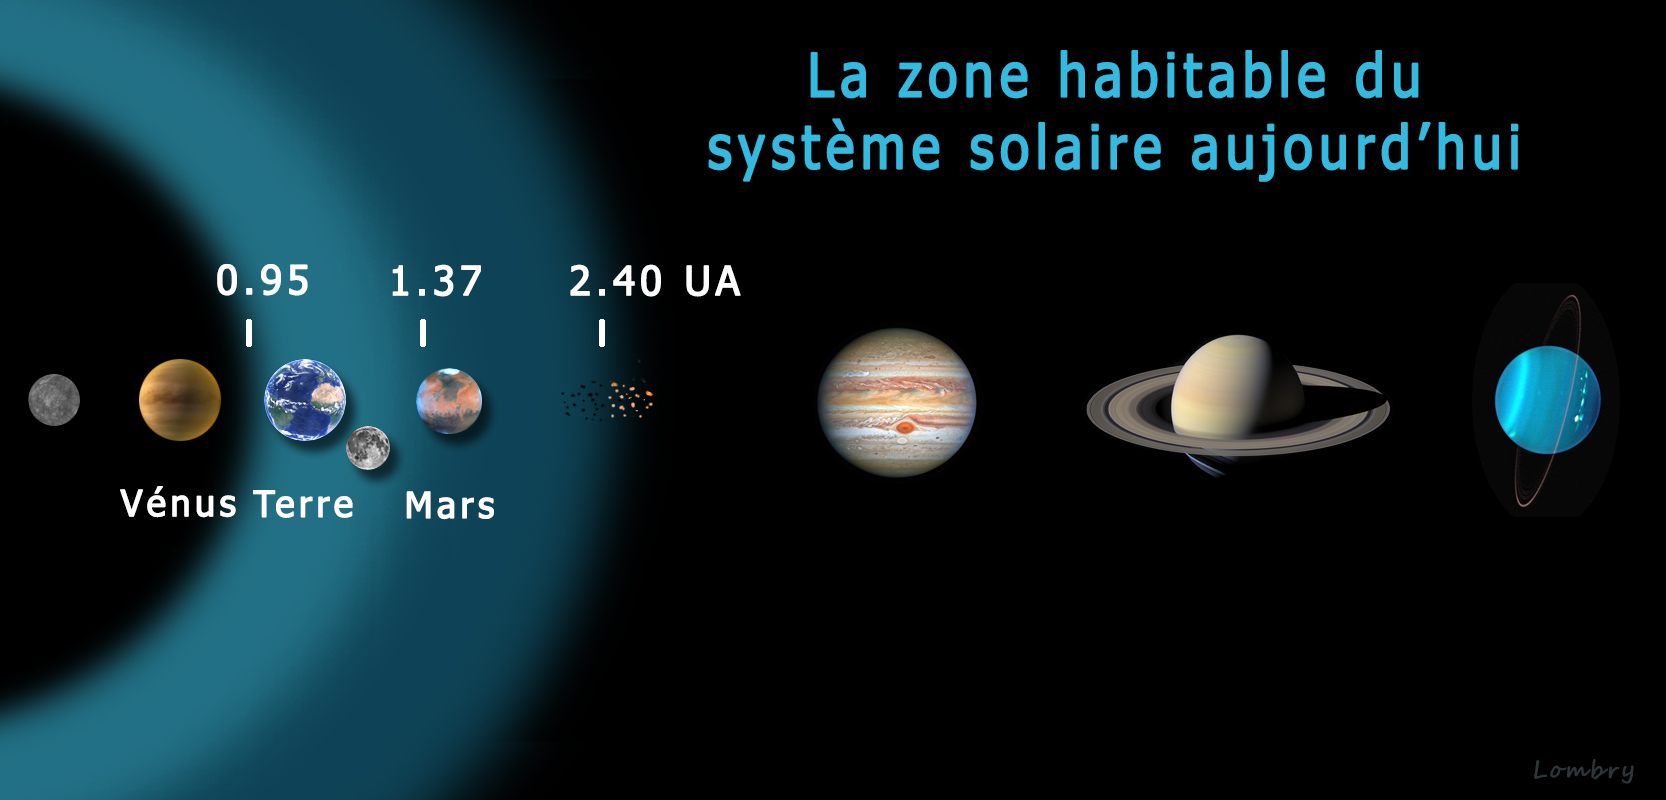 Habitable Zone Venus Quot Zone Habitable Quot